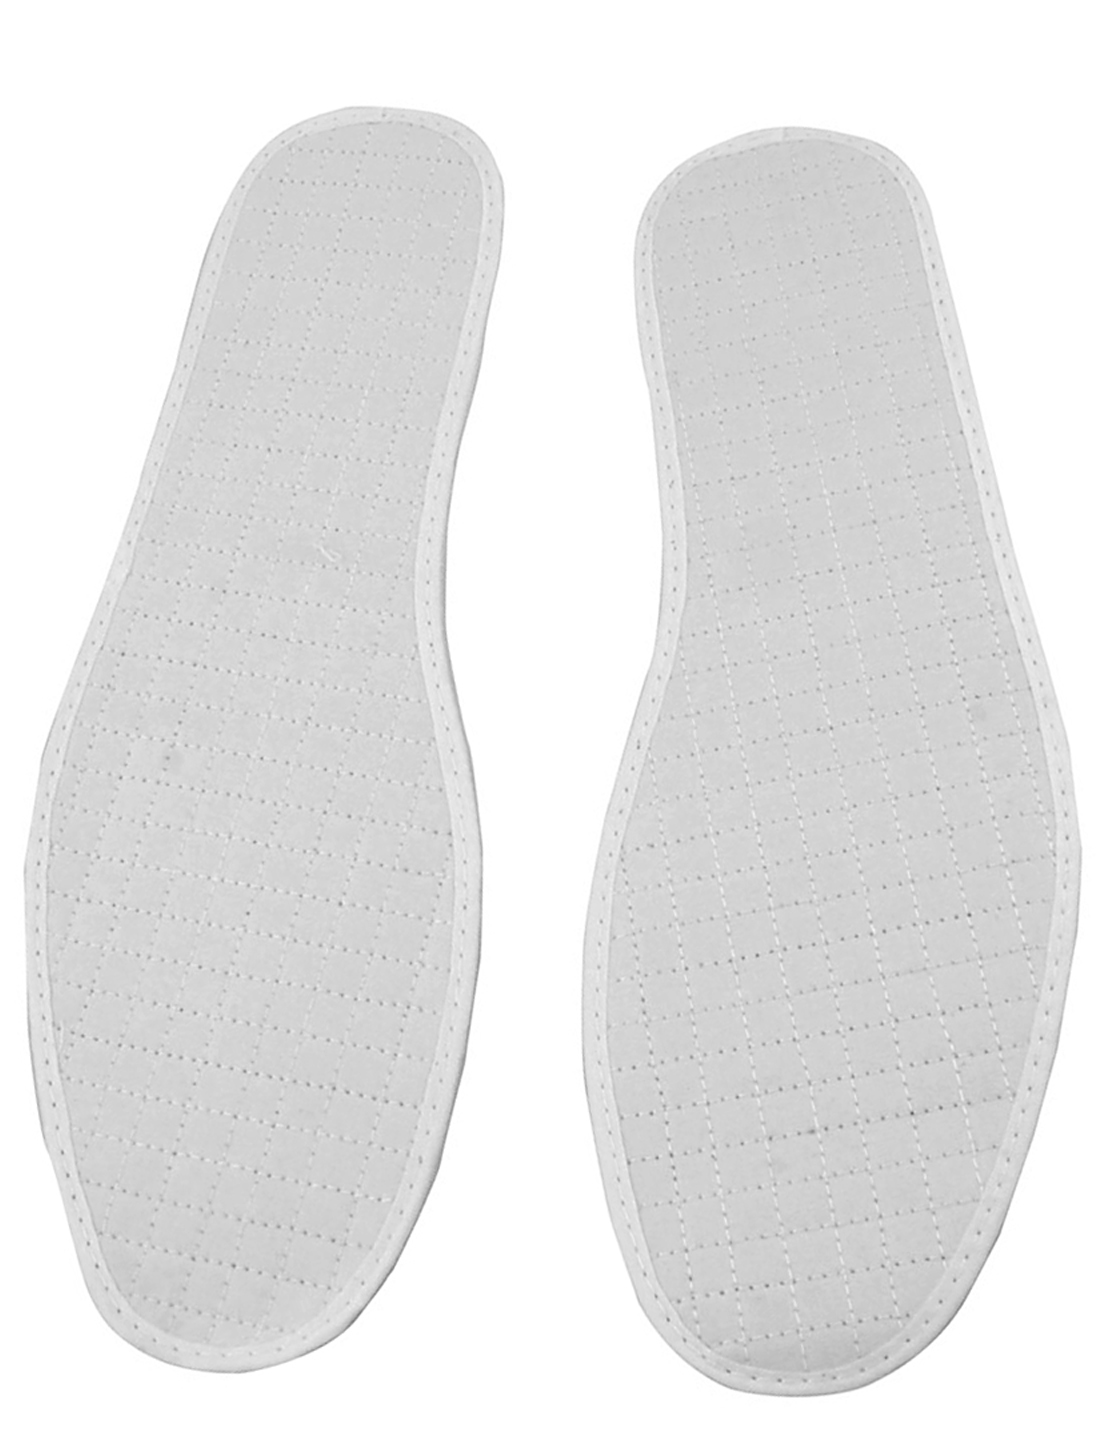 Pair Square Pattern Sweat-absorb Nonslip Design Shoe Pad Insole EU 42.5 for Men